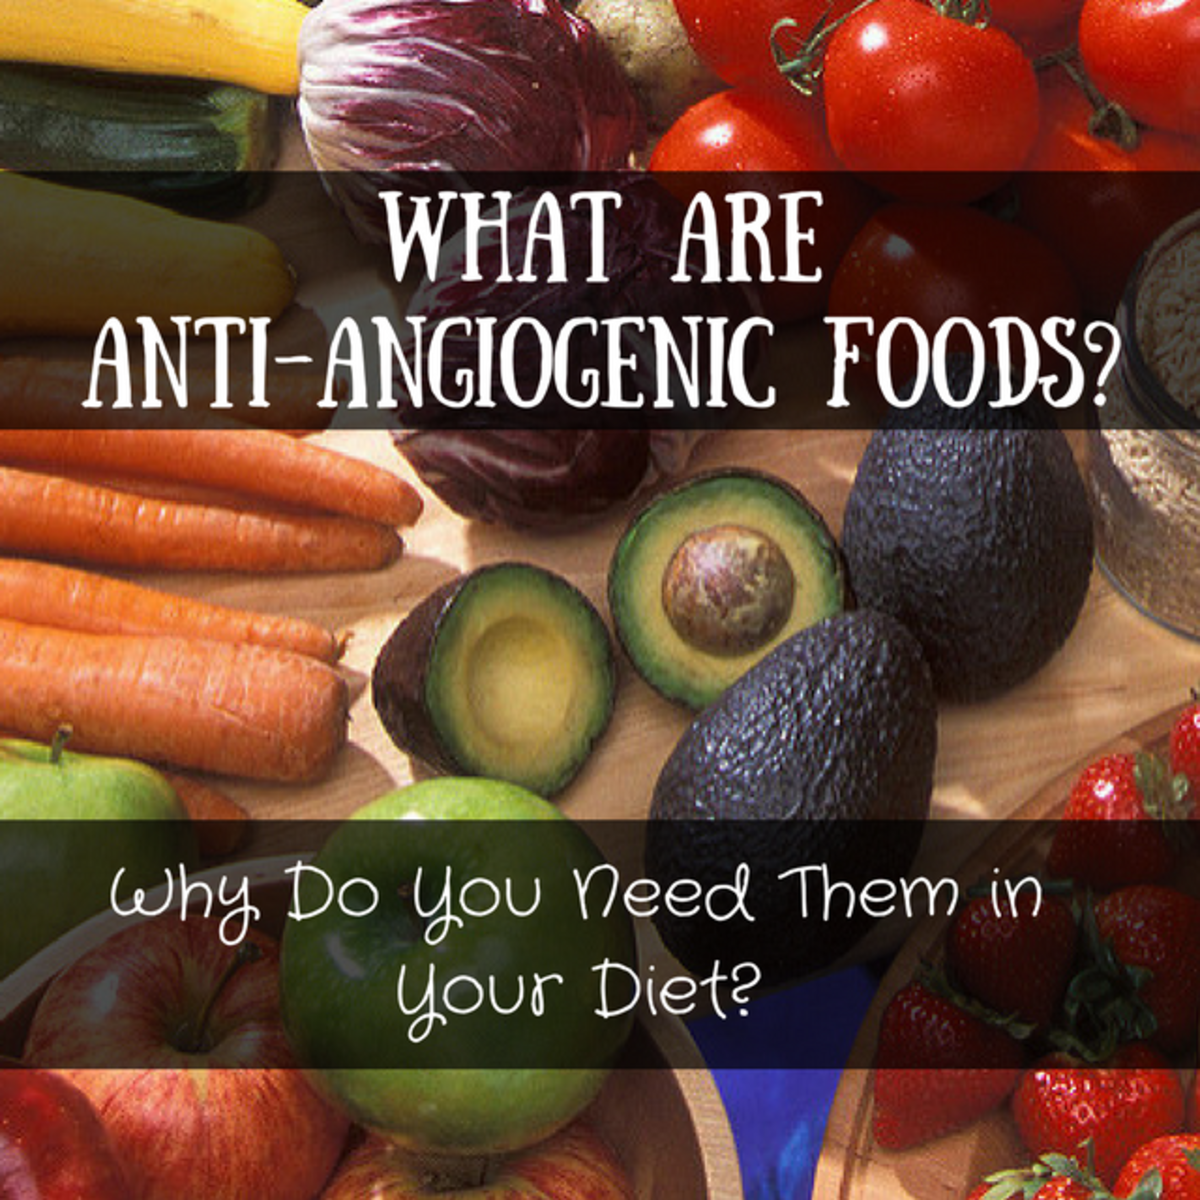 What Are Anti-Angiogenic Foods and Why Do You Need Them in Your Diet?